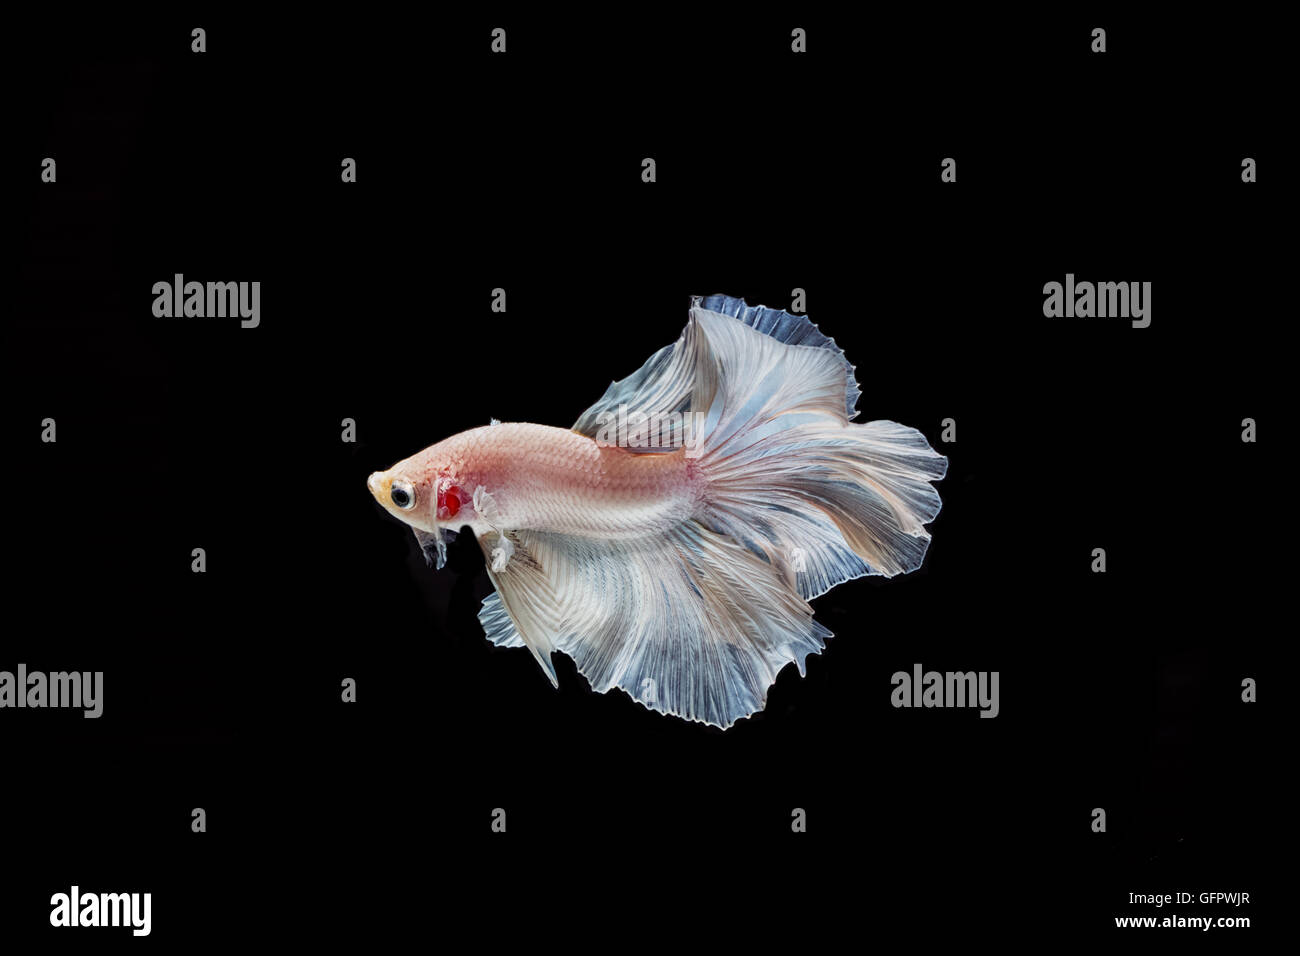 moving moment of white siamese fighting fish isolated on black background Stock Photo